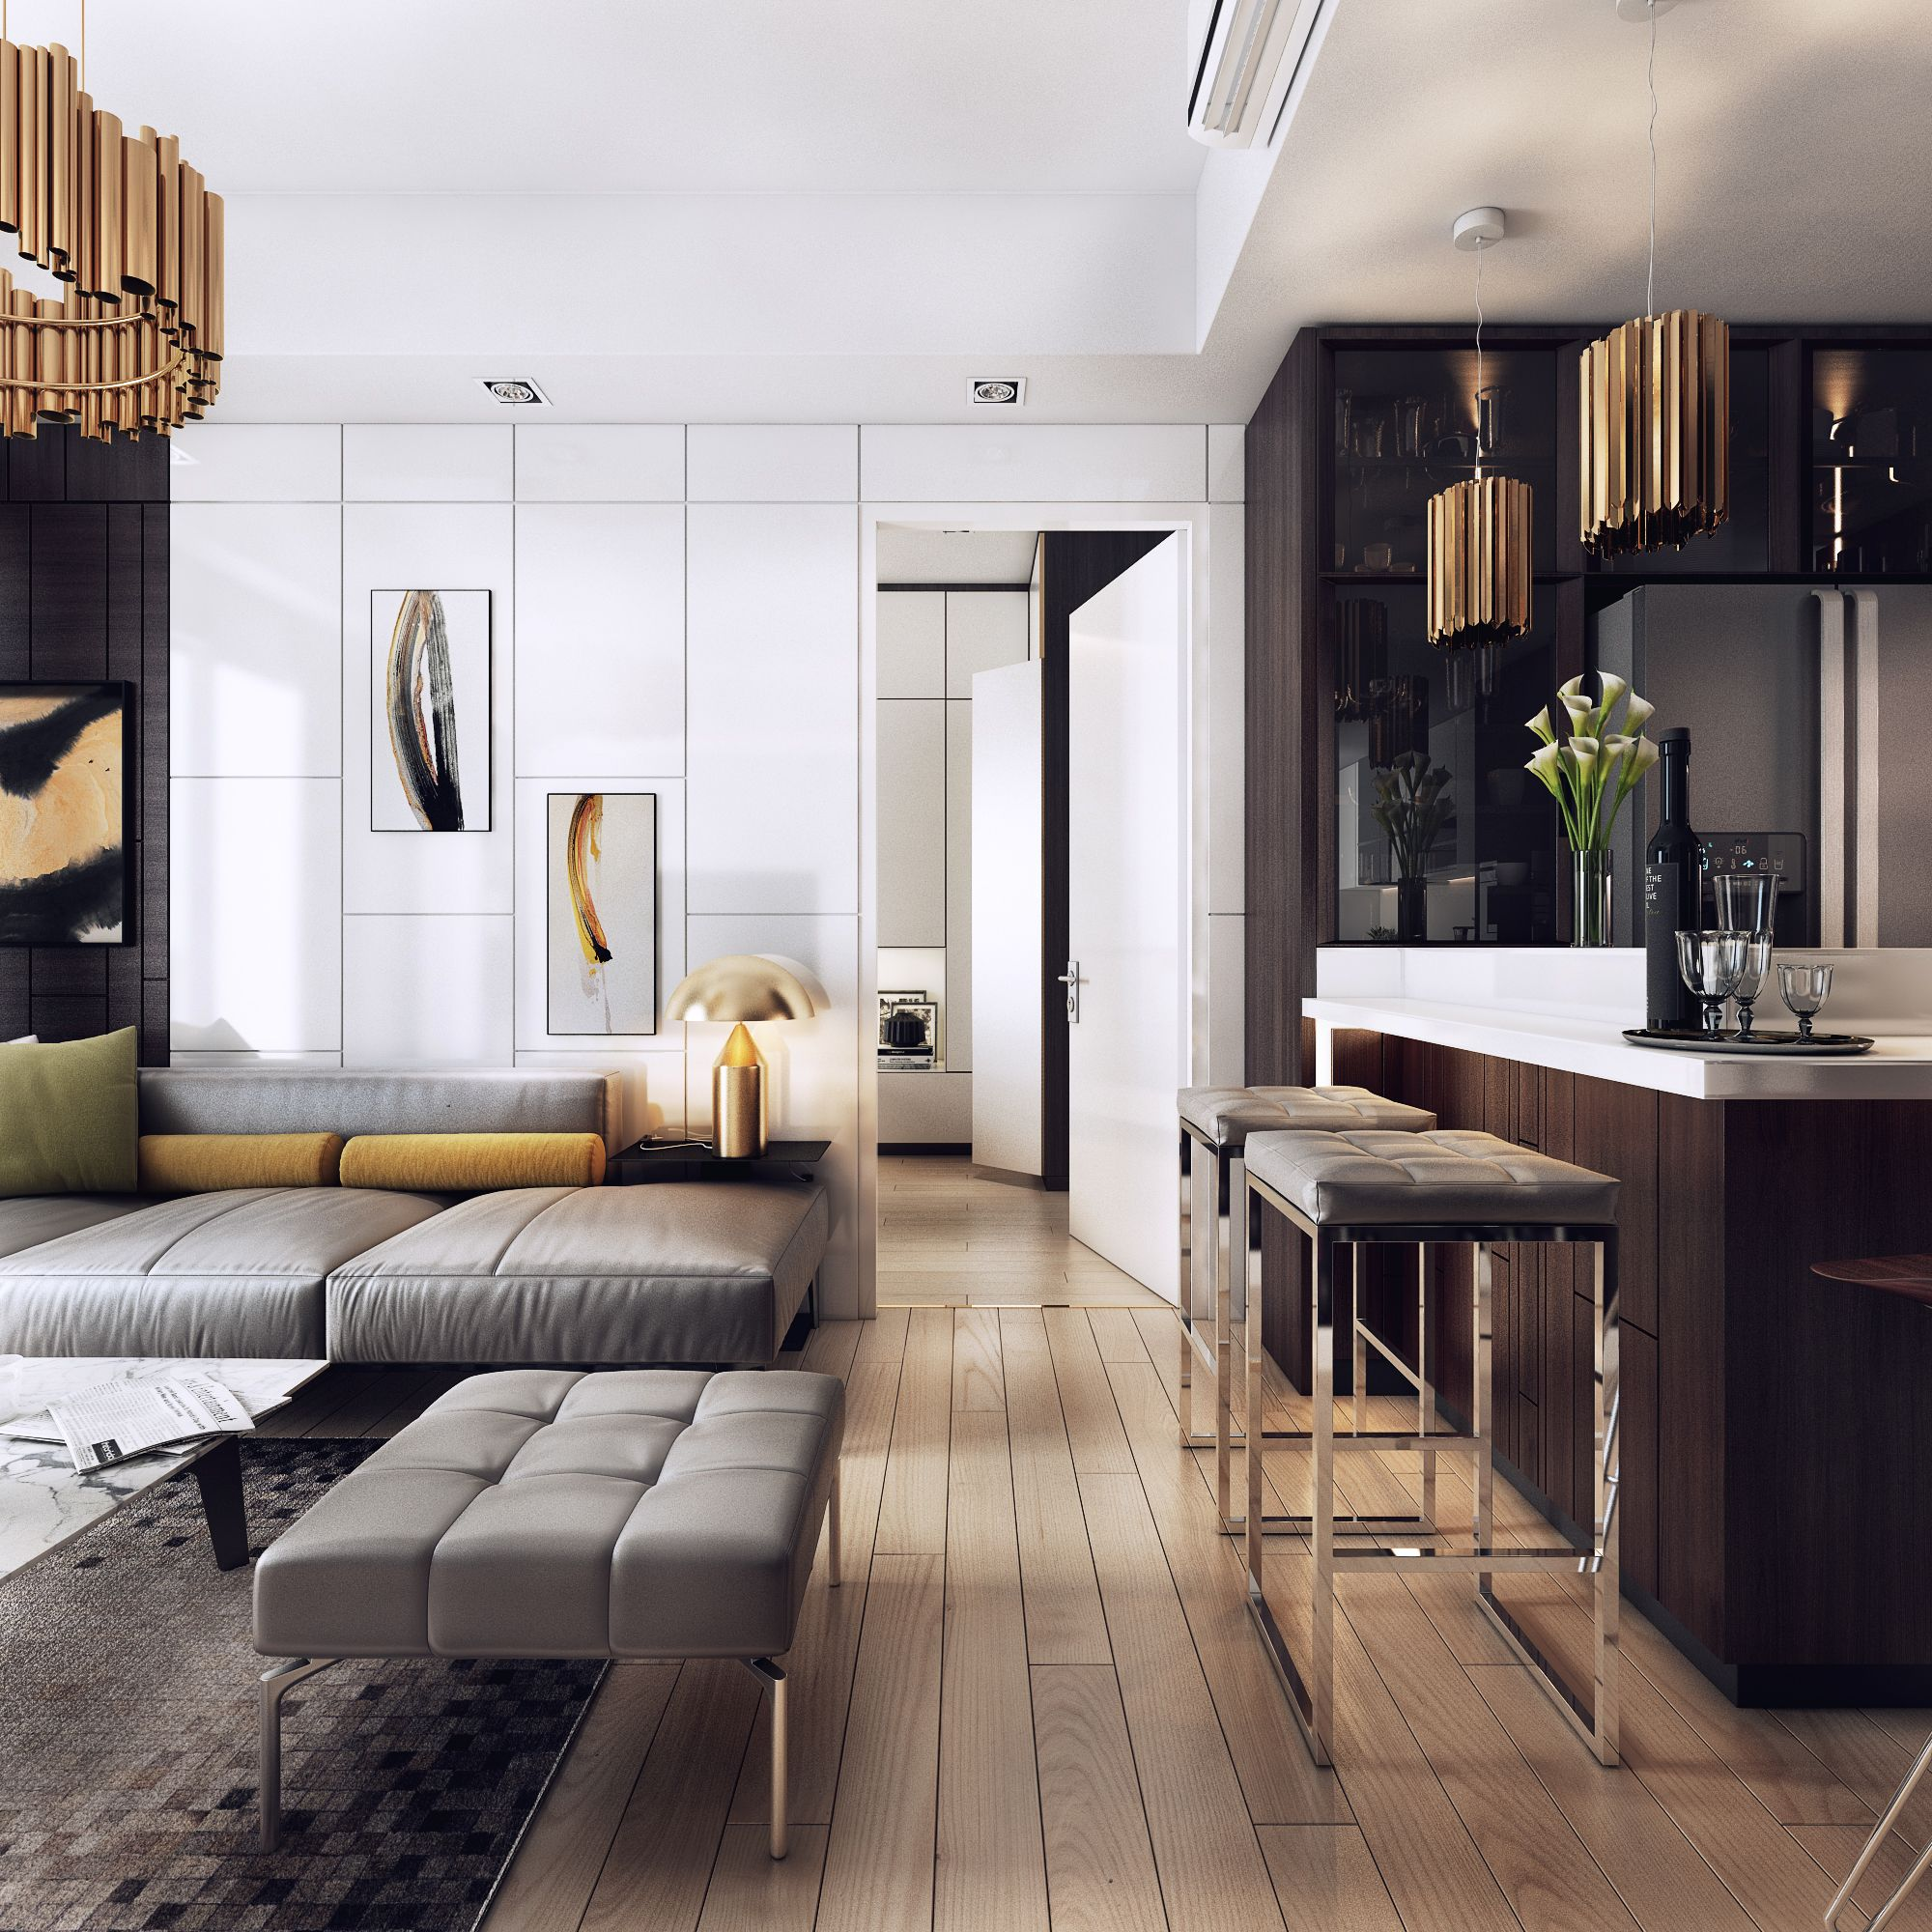 luxury apartment interior design ideas with the right on stunning minimalist apartment décor ideas home decor for your small apartment id=60569